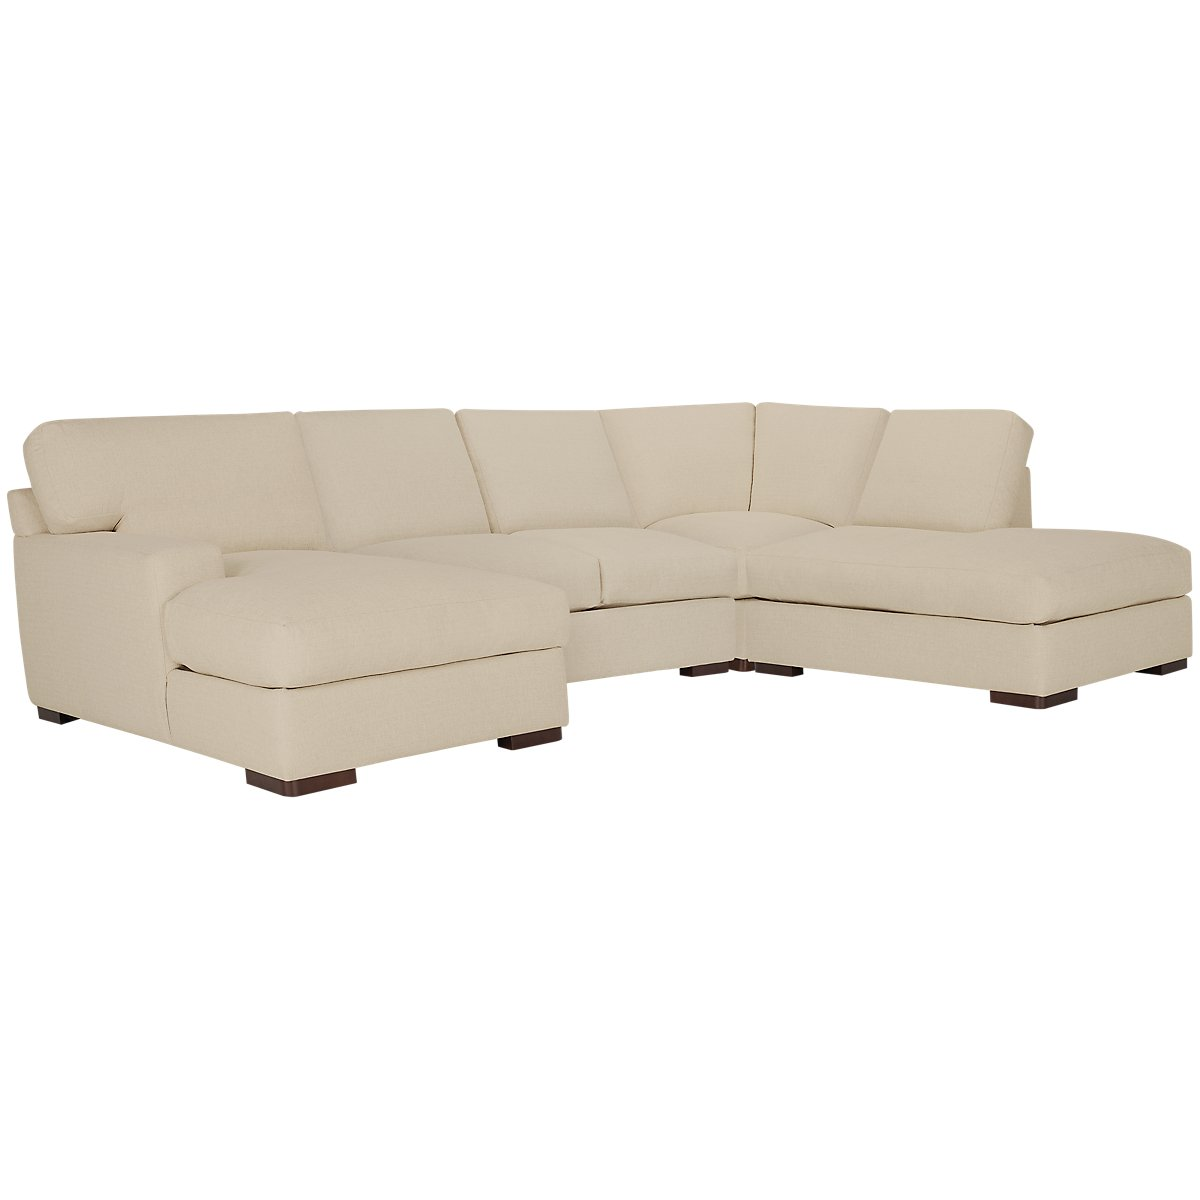 Veronica Khaki Down Small Right Bumper Sectional